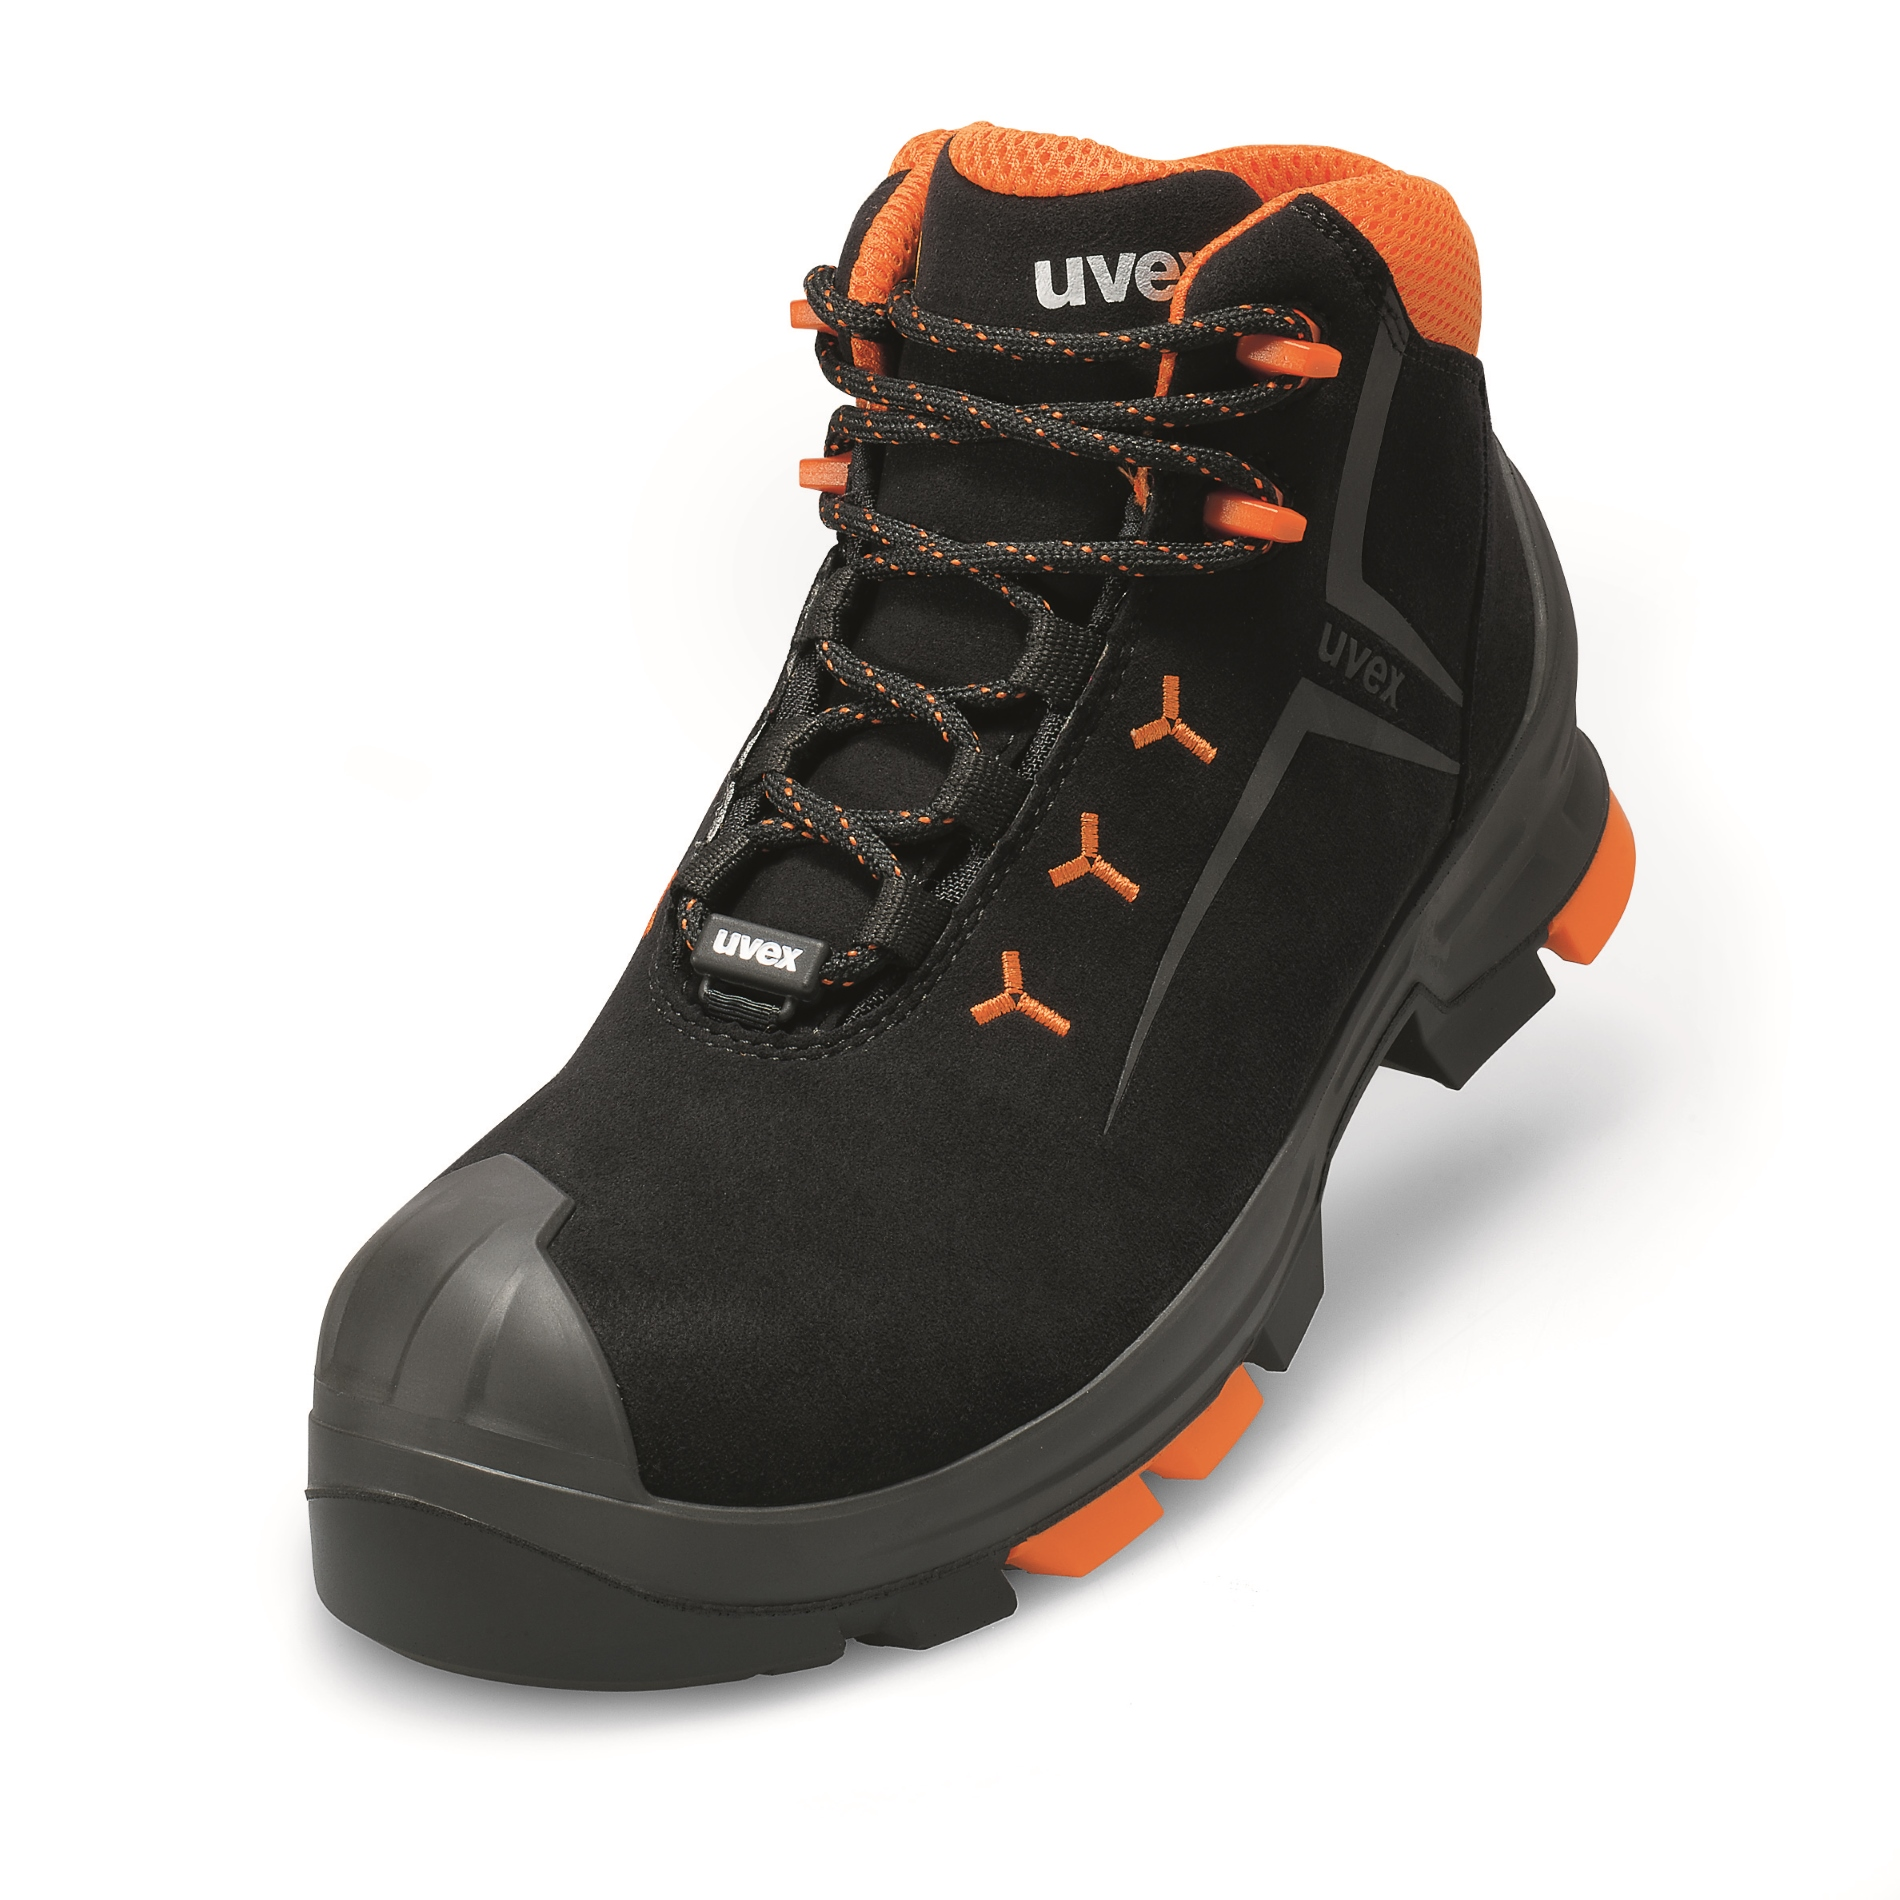 Uvex 2 S3 Src Boot Safety Shoes Uvex Safety